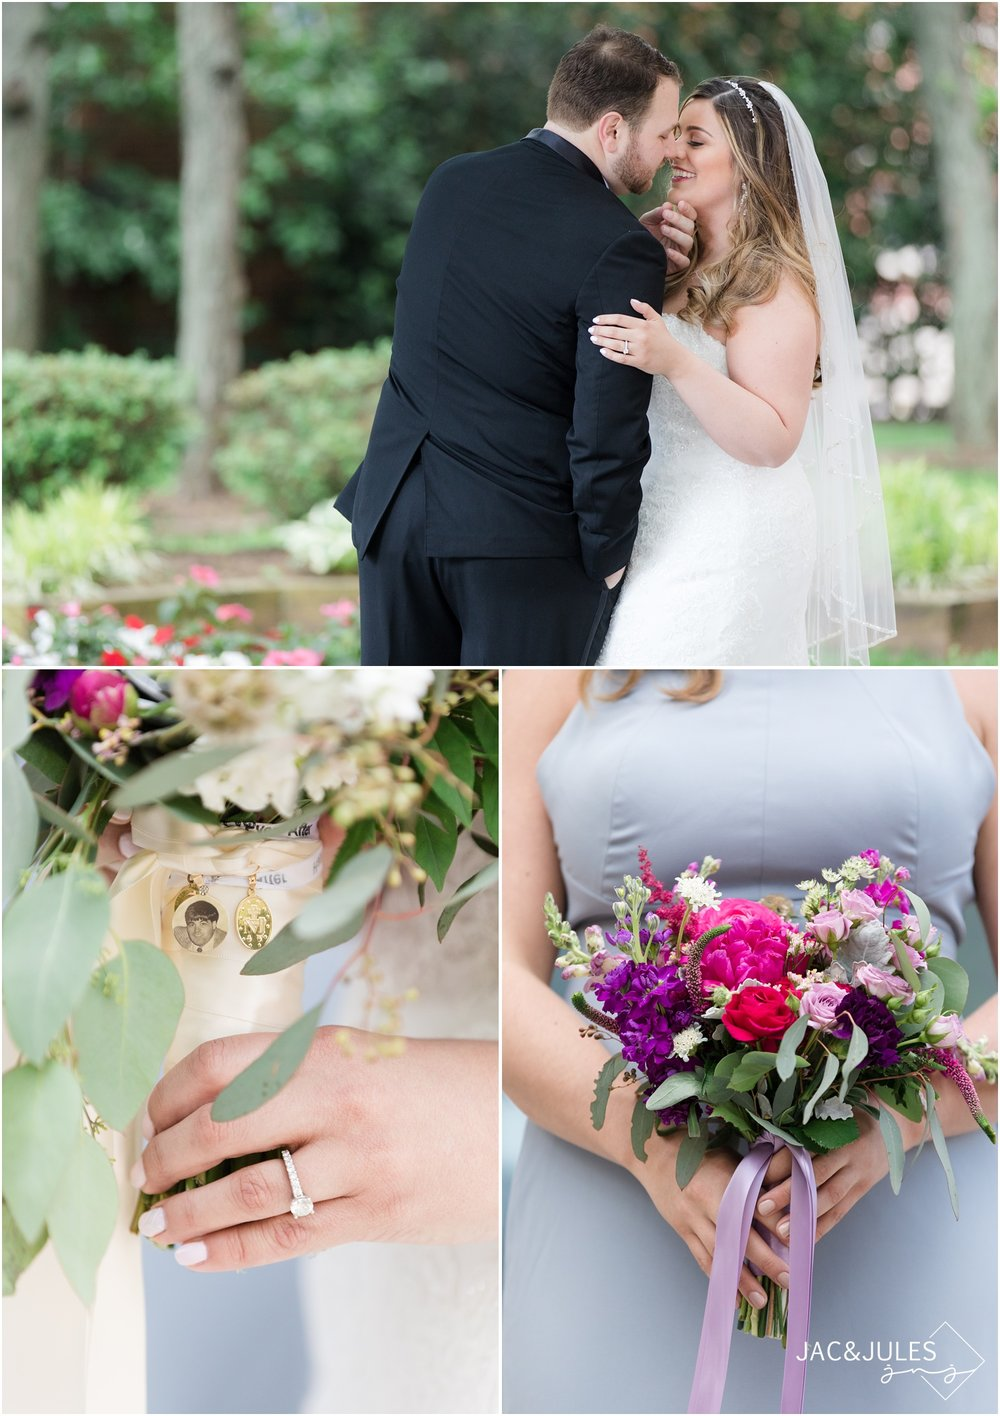 Photos of bridal and bridesmaid bouquets with locket detail by Bloomers in Allentown, NJ.